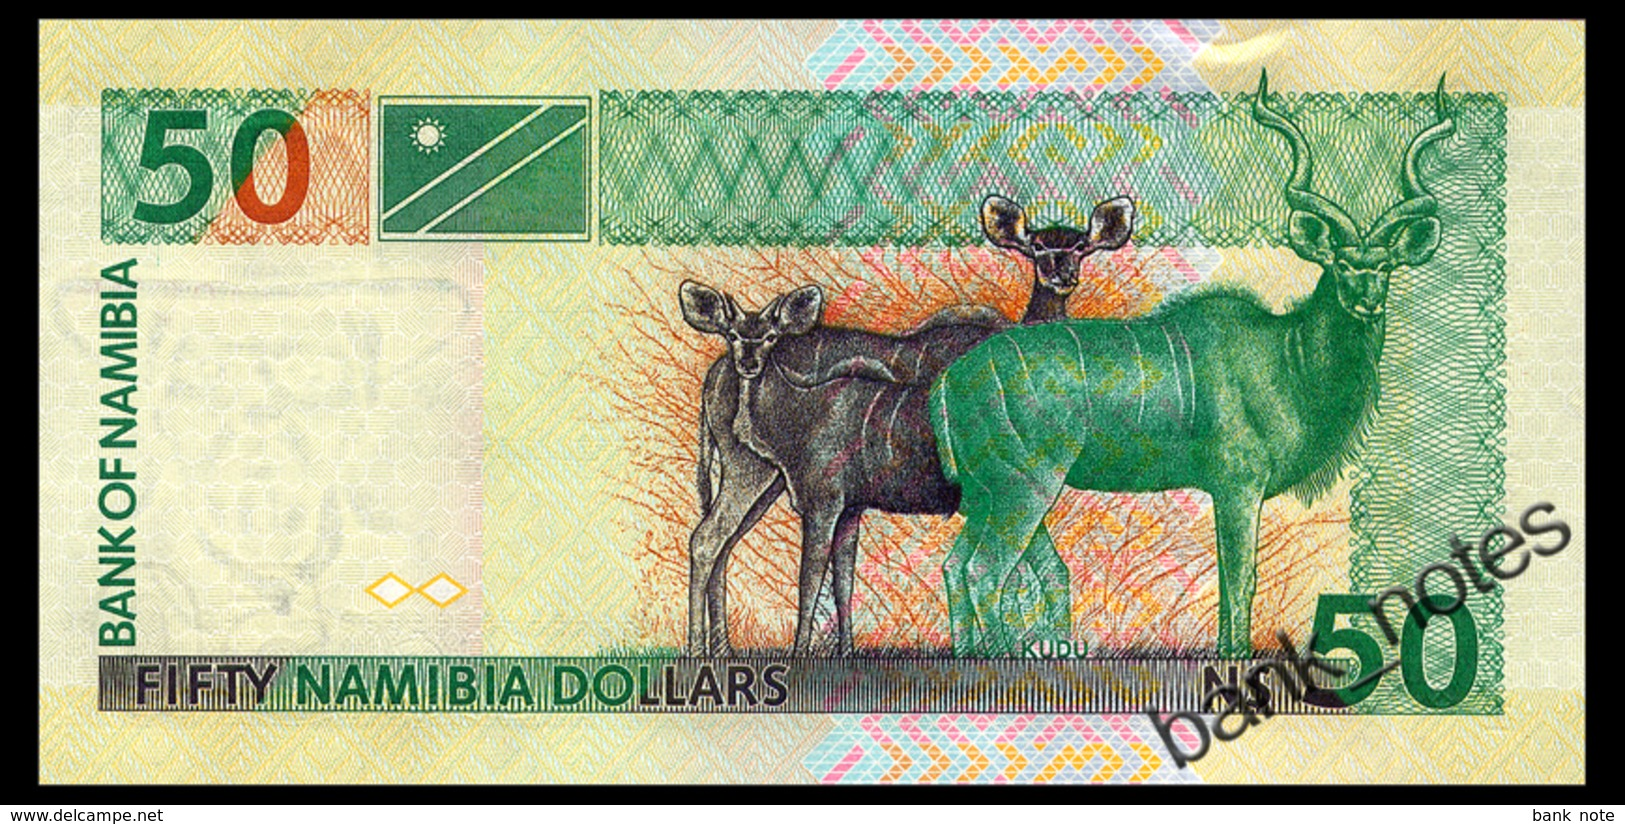 NAMIBIA 50 DOLLARS ND(2003) Pick 8a Unc - Namibia